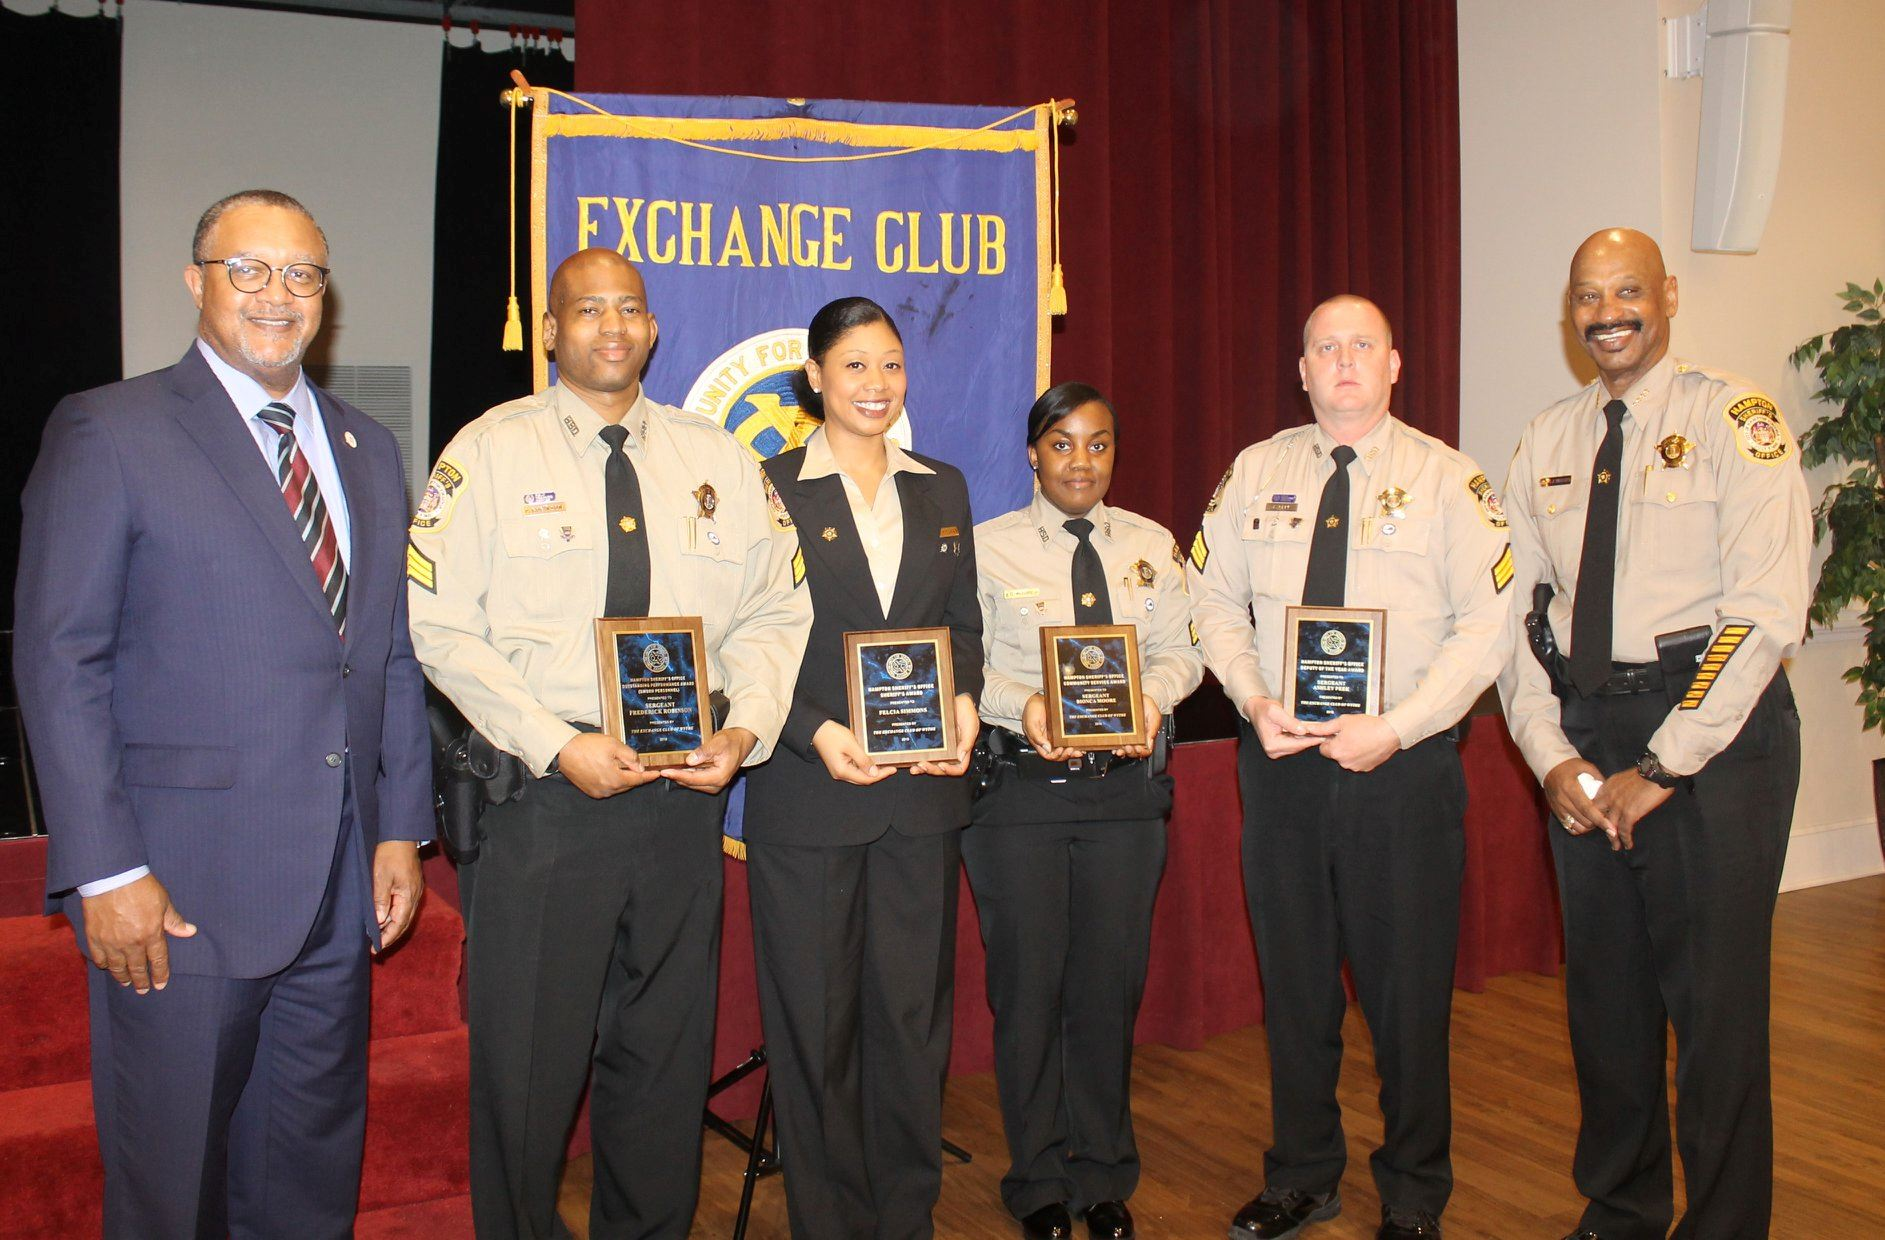 2017 Exchange club award winners